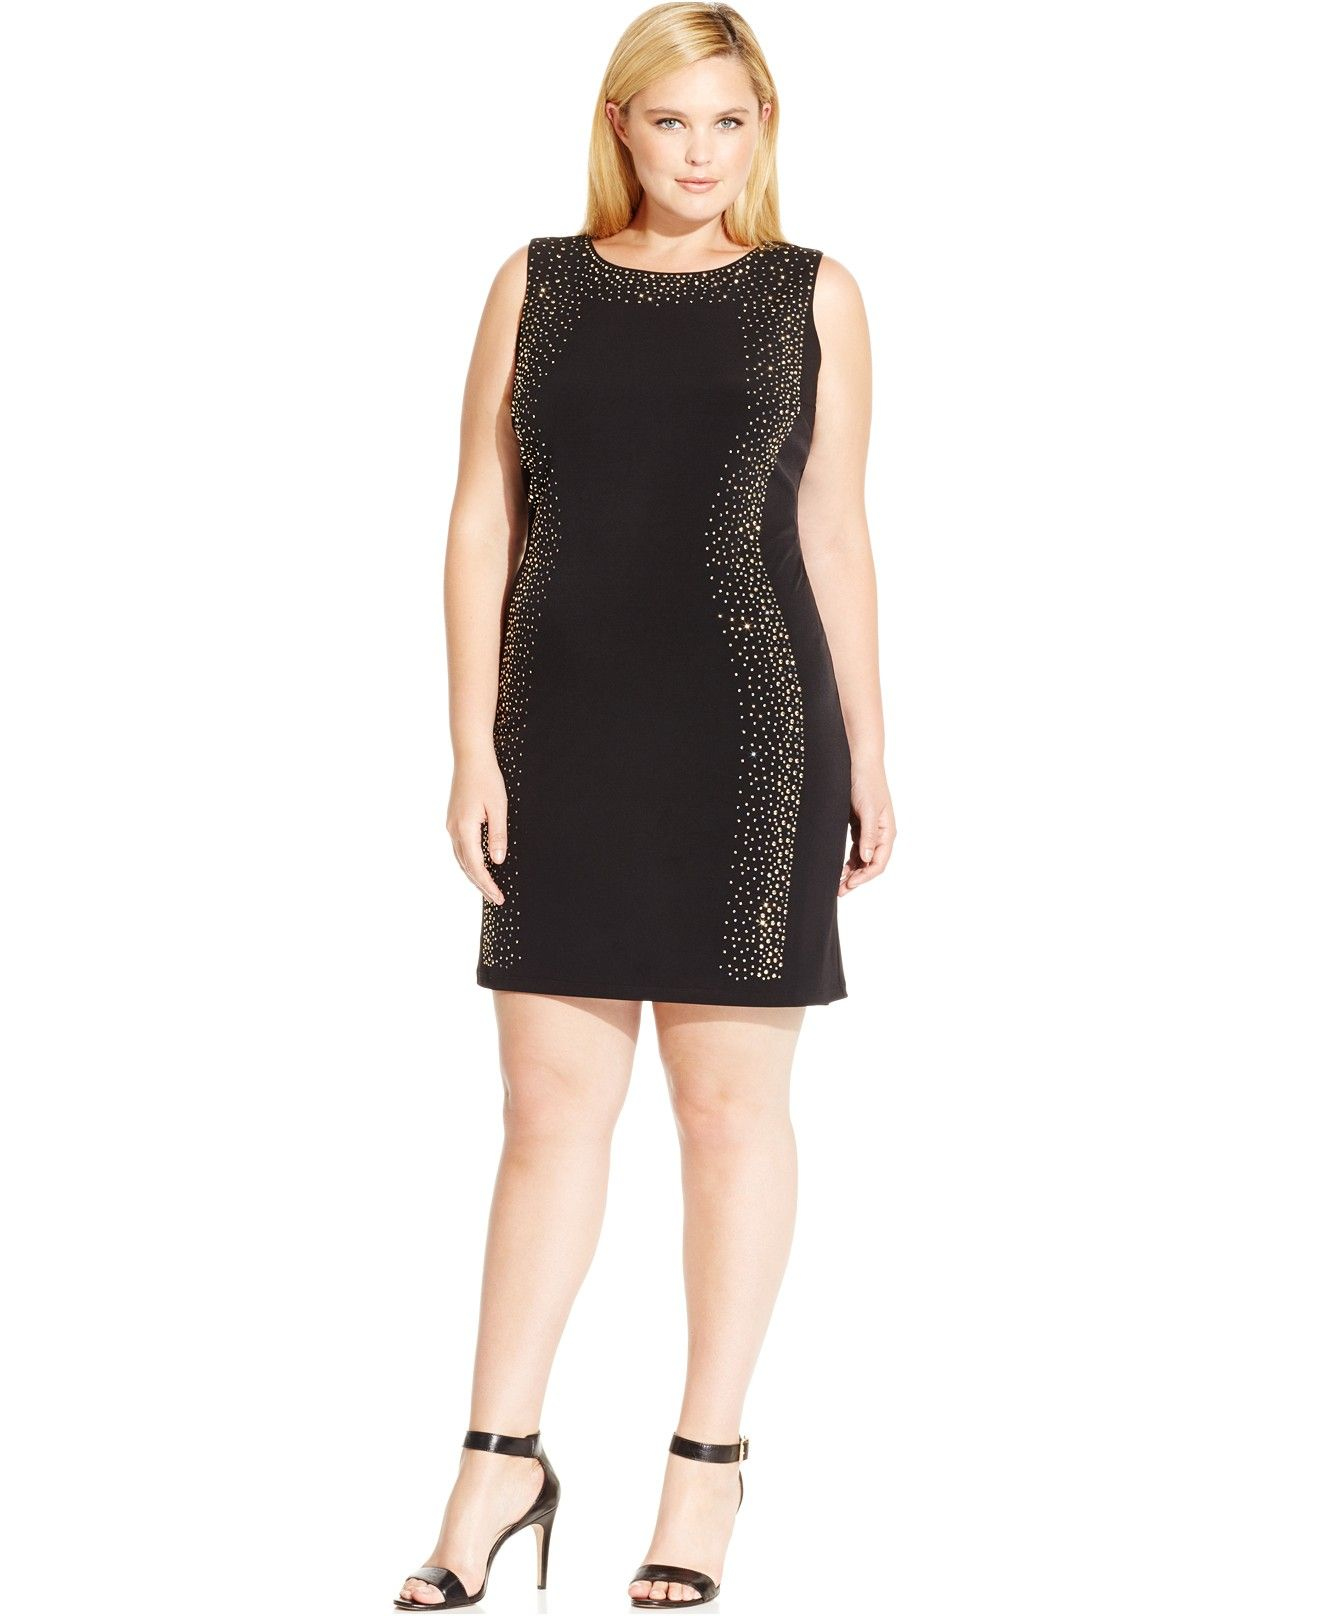 55075e3b74 Calvin Klein Plus Size Studded Bodycon Dress - Calvin Klein - Plus Sizes -  Macy s